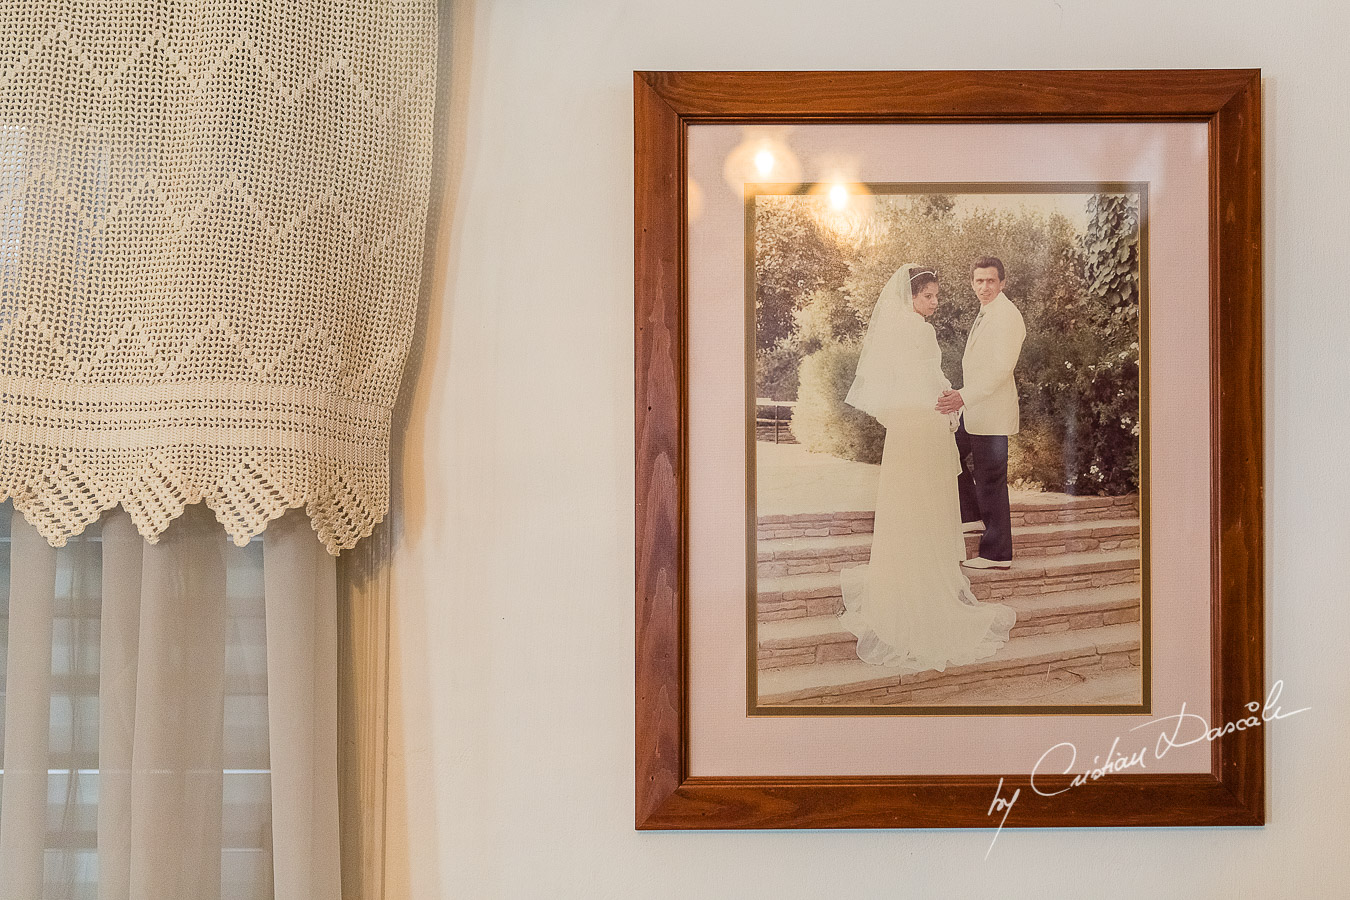 Photo with groom's parents photographed at a wedding in Nicosia by Cyprus Wedding Photographer Cristian Dascalu